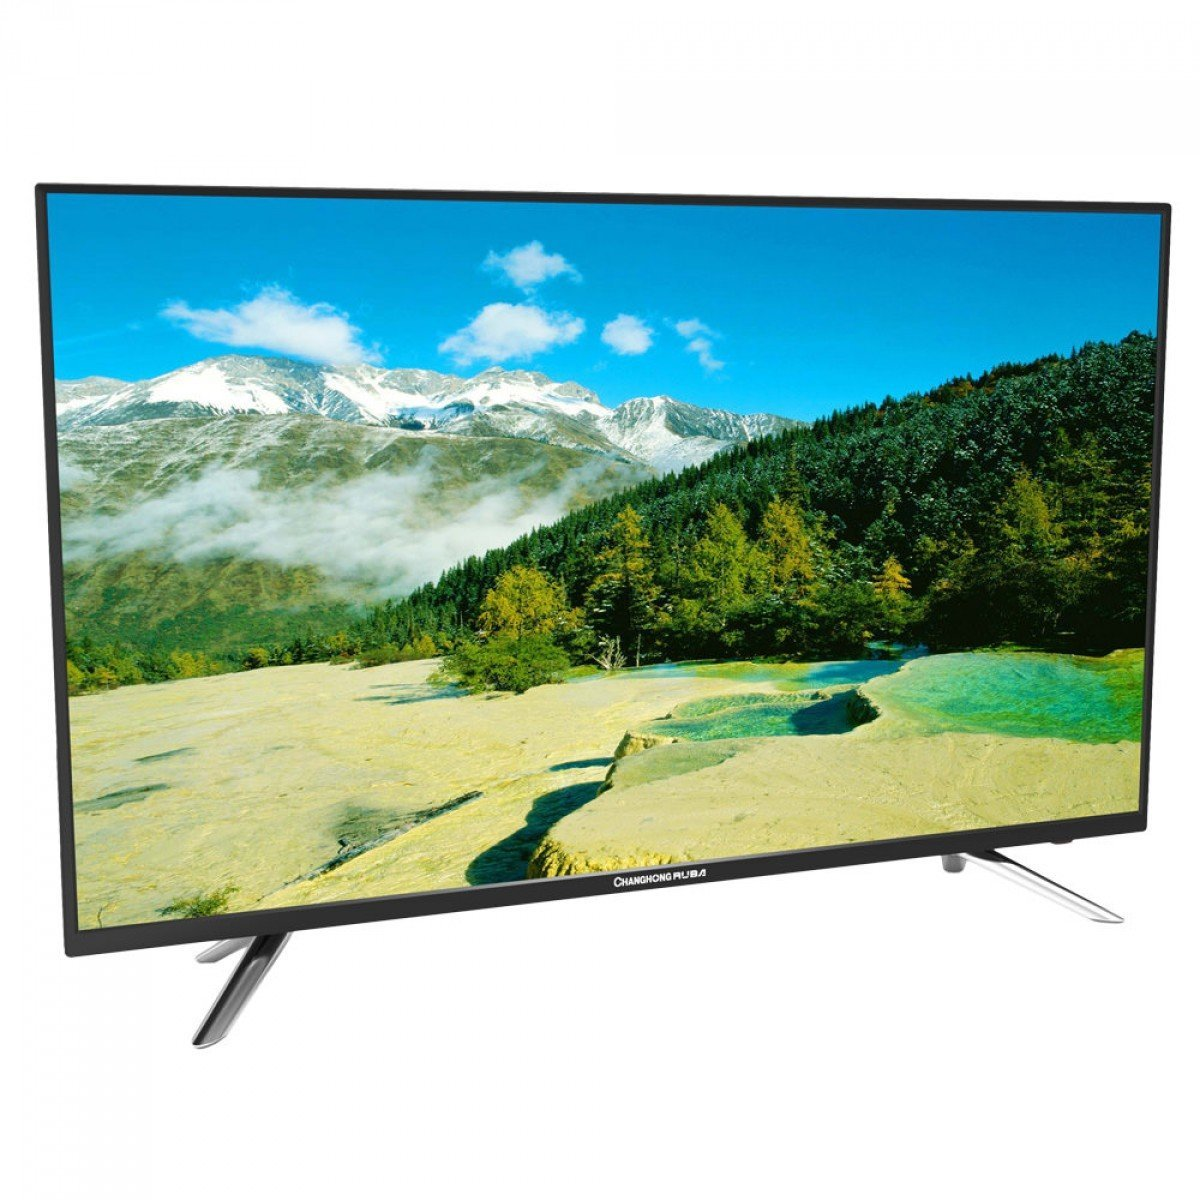 "Image of Changhong LED32E2000 32"" (81cm) HD LED TV (Brand New 3 Yr Manufacturer's Warranty)"